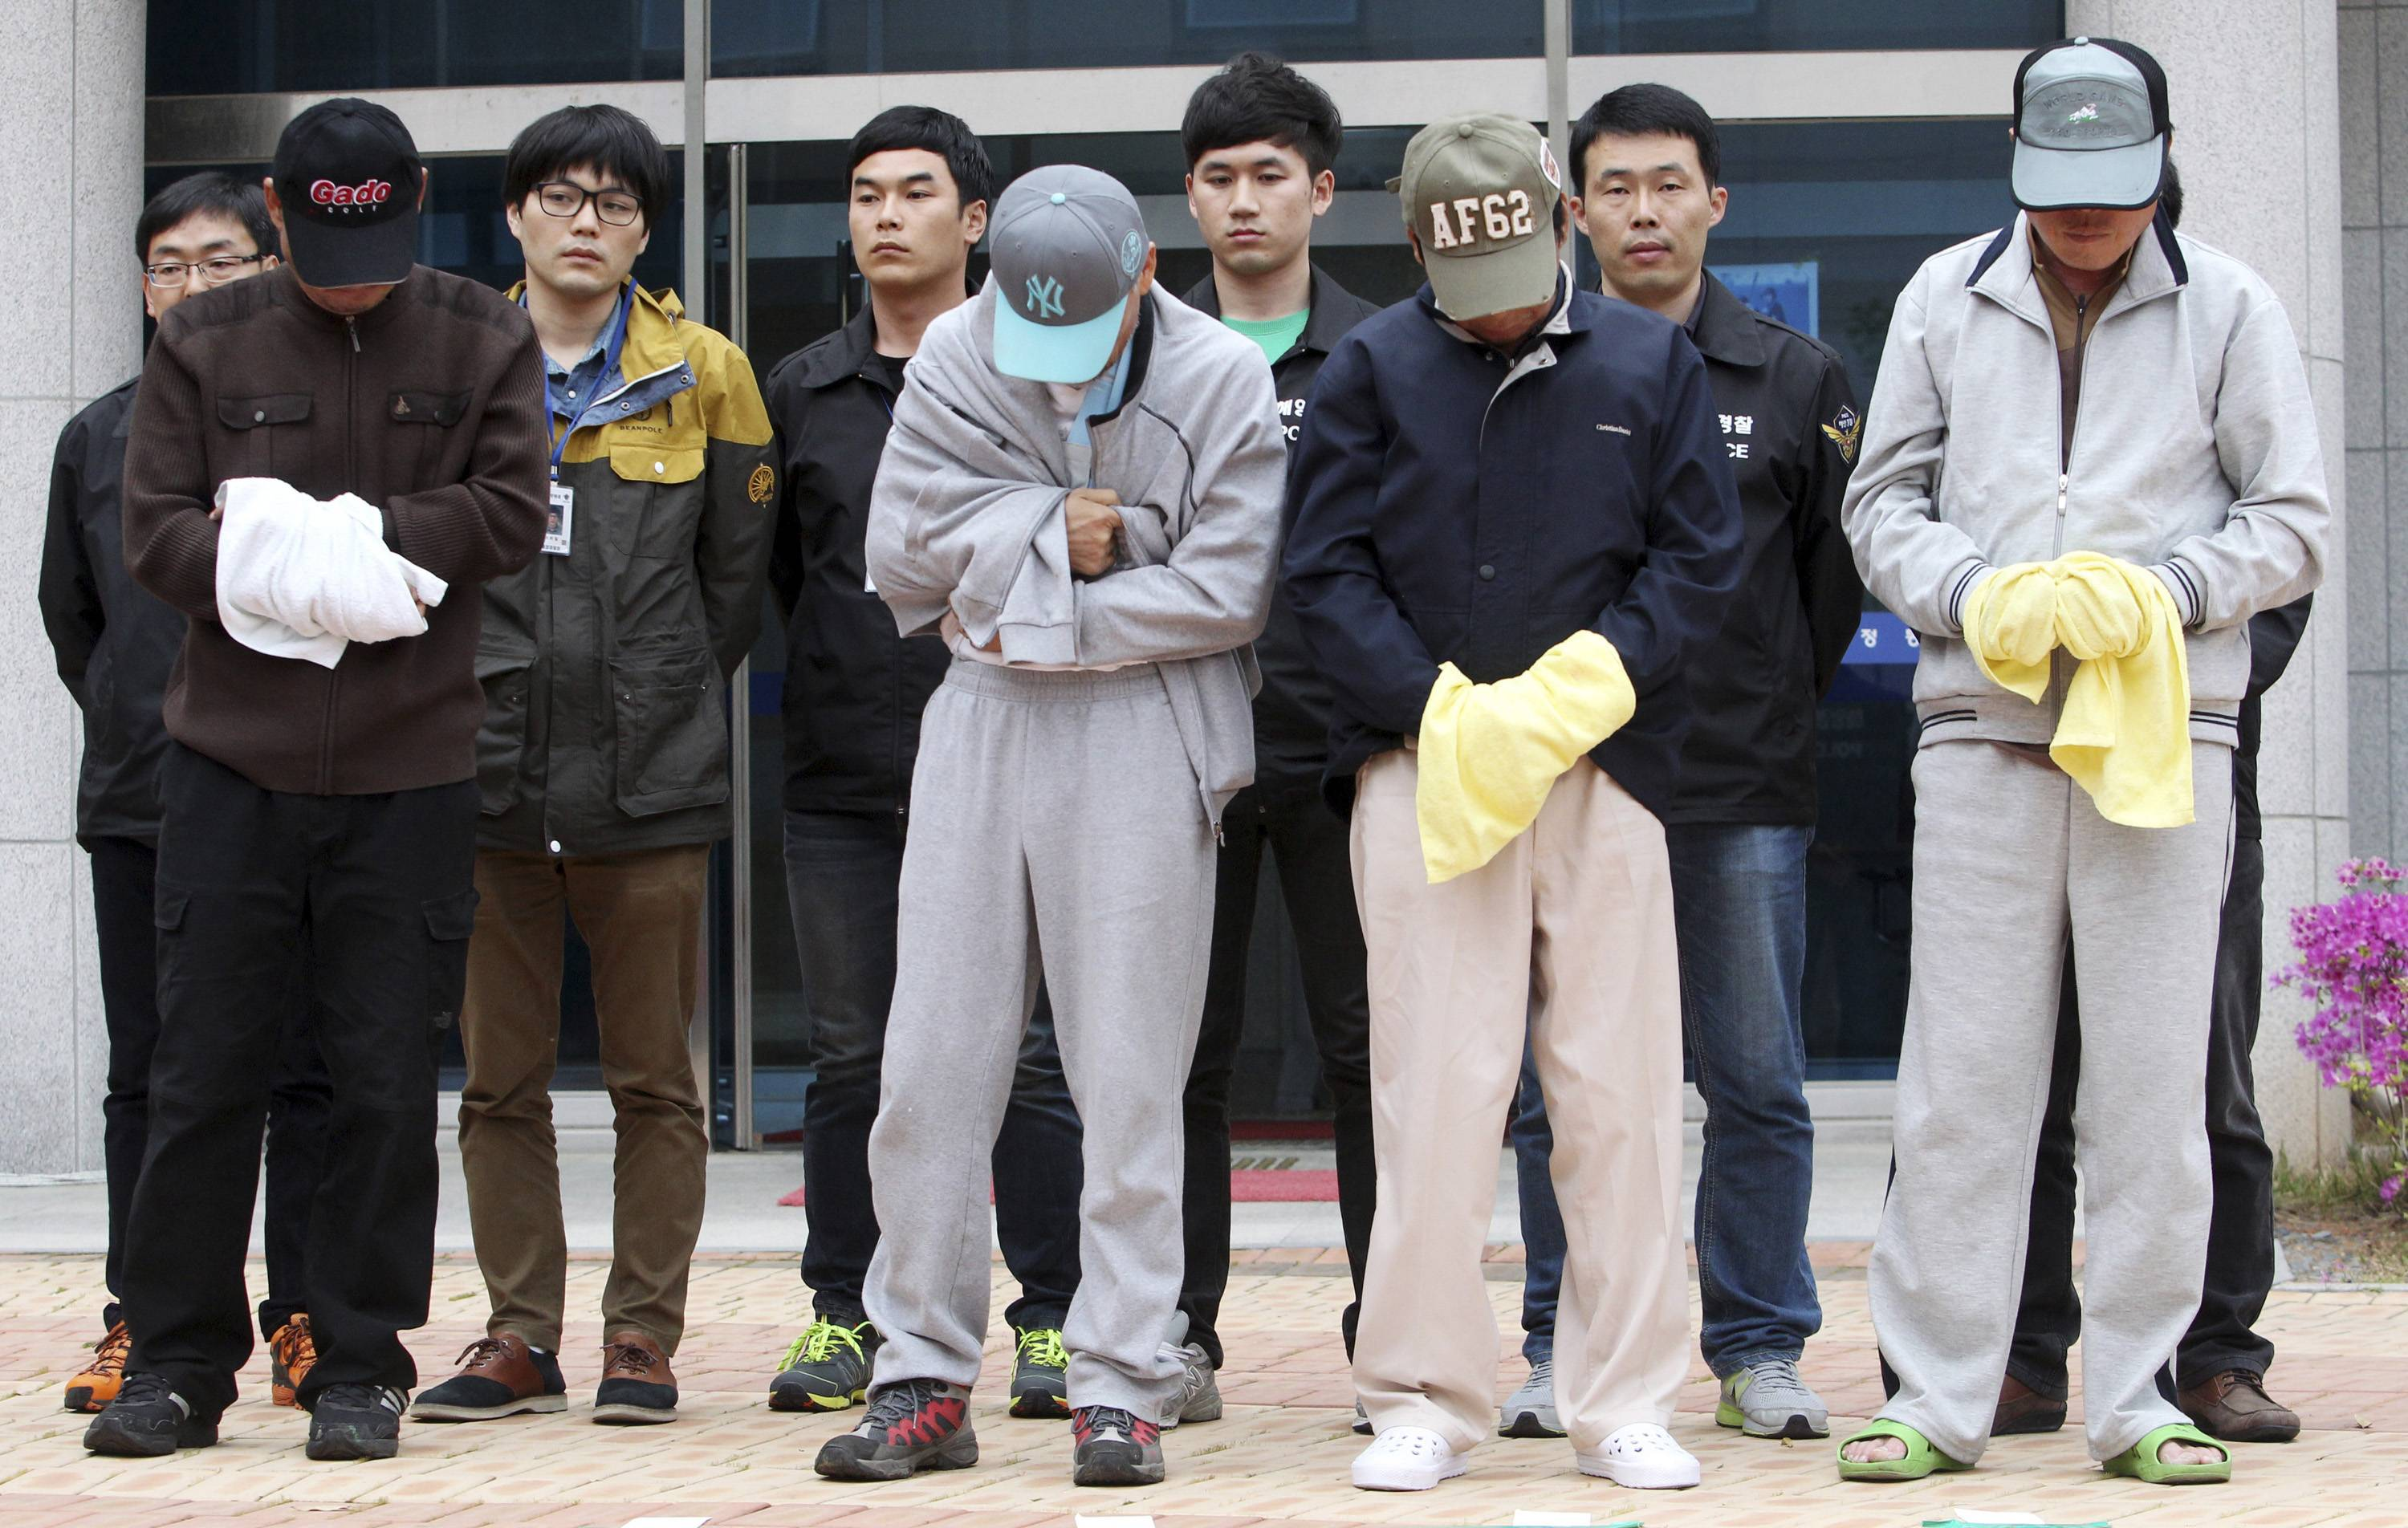 Crew members of sunken ferry Sewol prepare to leave a court which issued their arrest warrant, in Mokpo, South Korea, Saturday, April 26, 2014. All 15 people involved in navigating the South Korean ferry that sank and left scores of people dead or missing are now in custody after authorities on Saturday detained four more crew members, a prosecutor said.